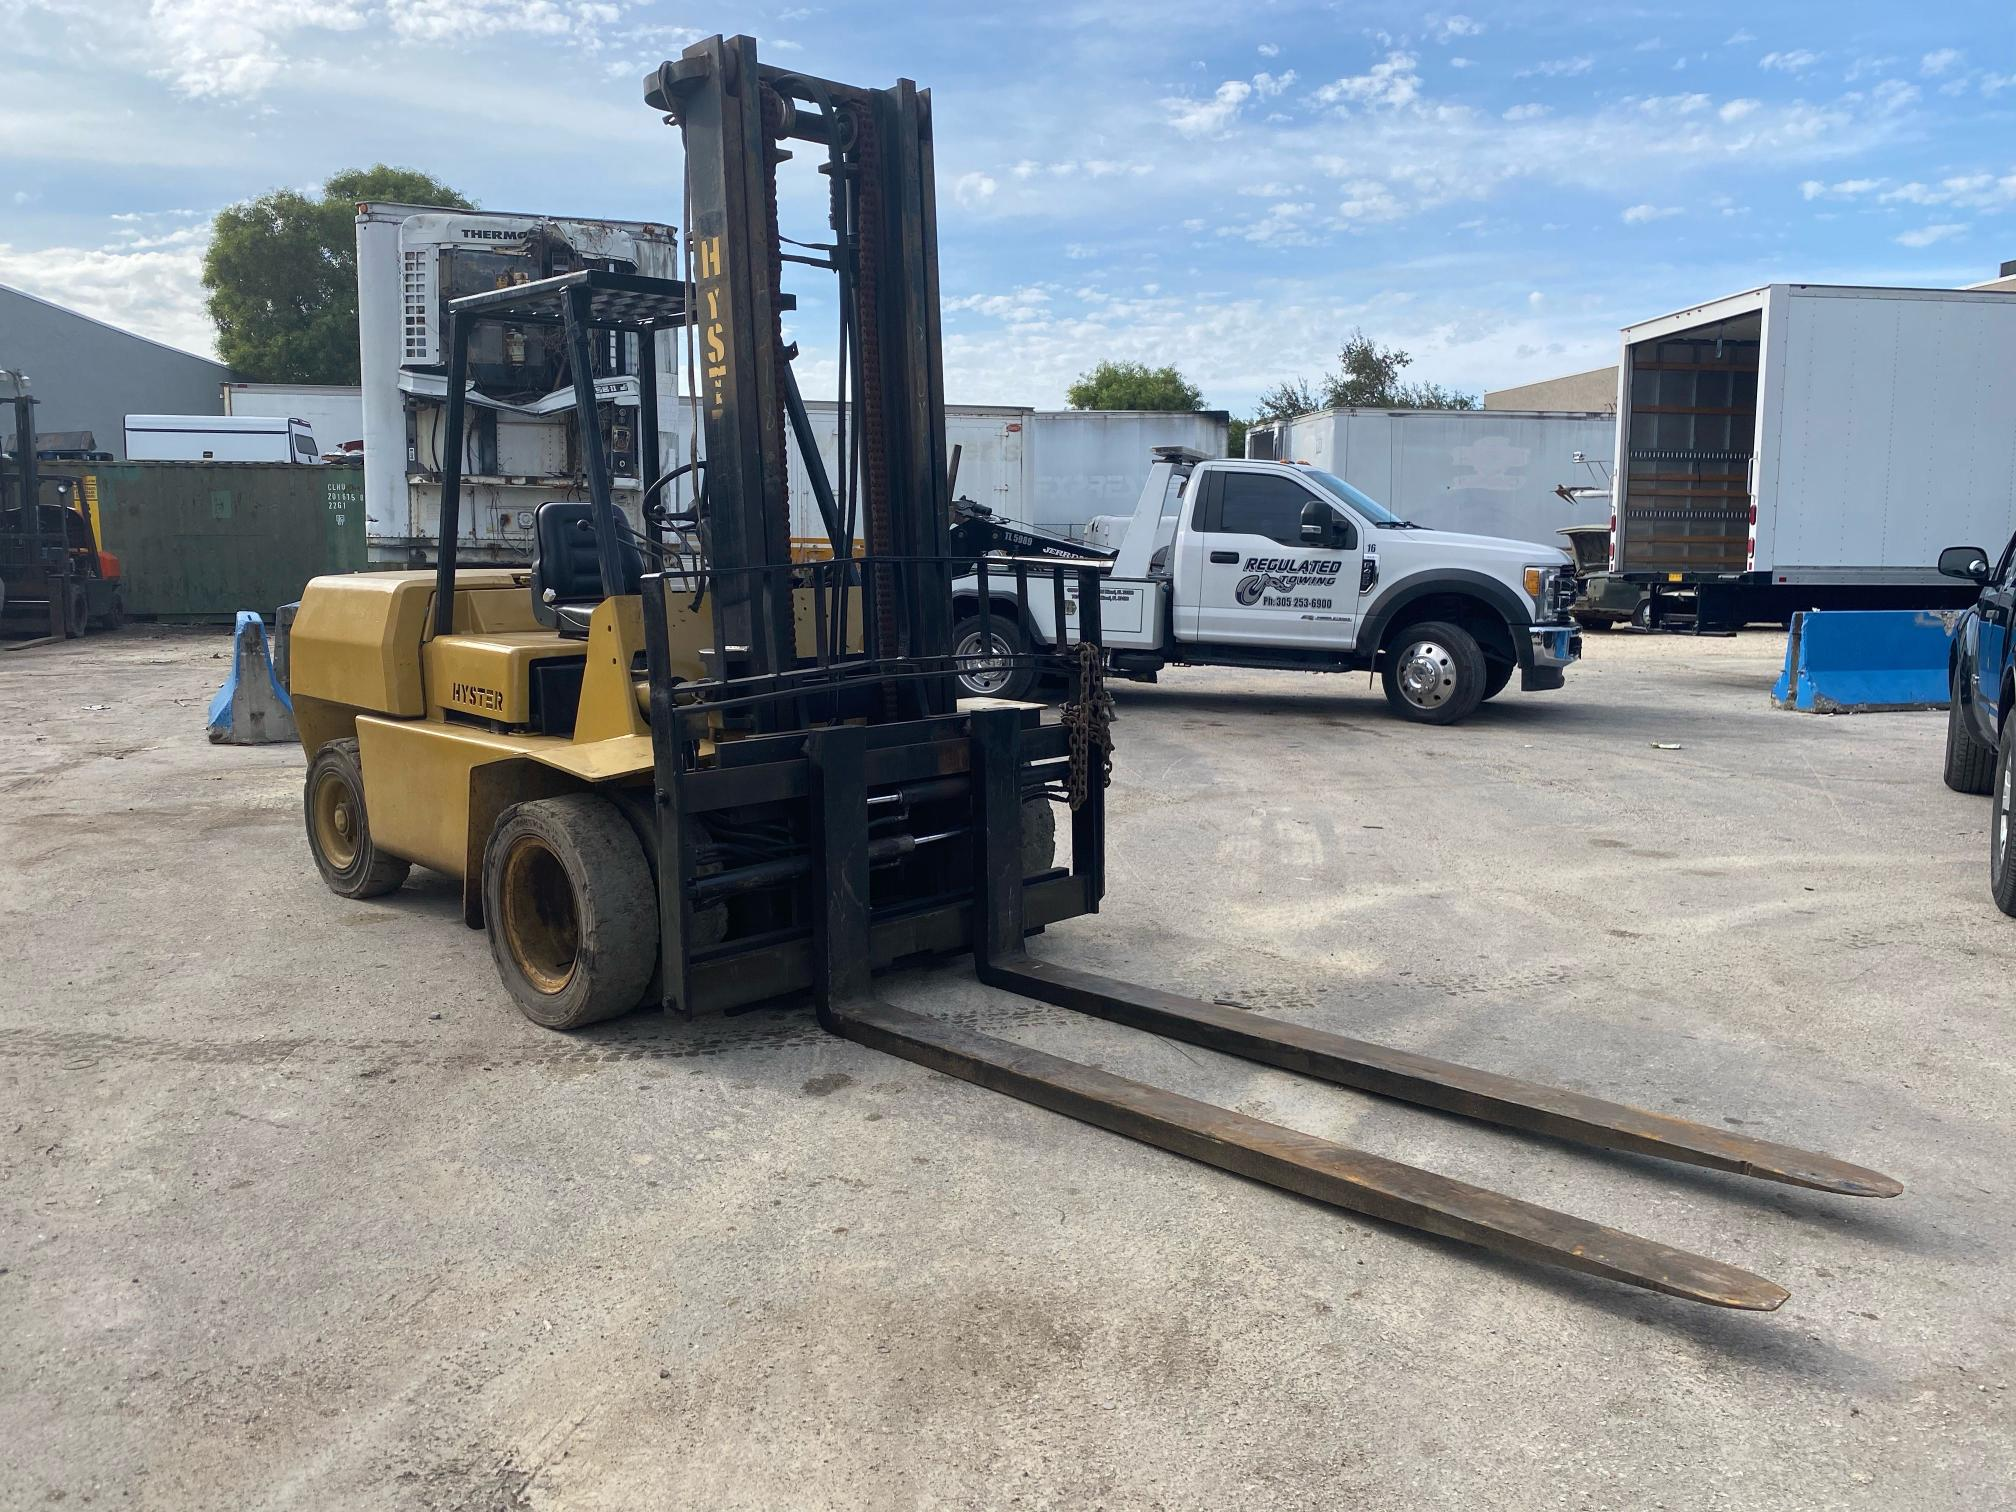 2002 Hyster Forklift for sale in Homestead, FL